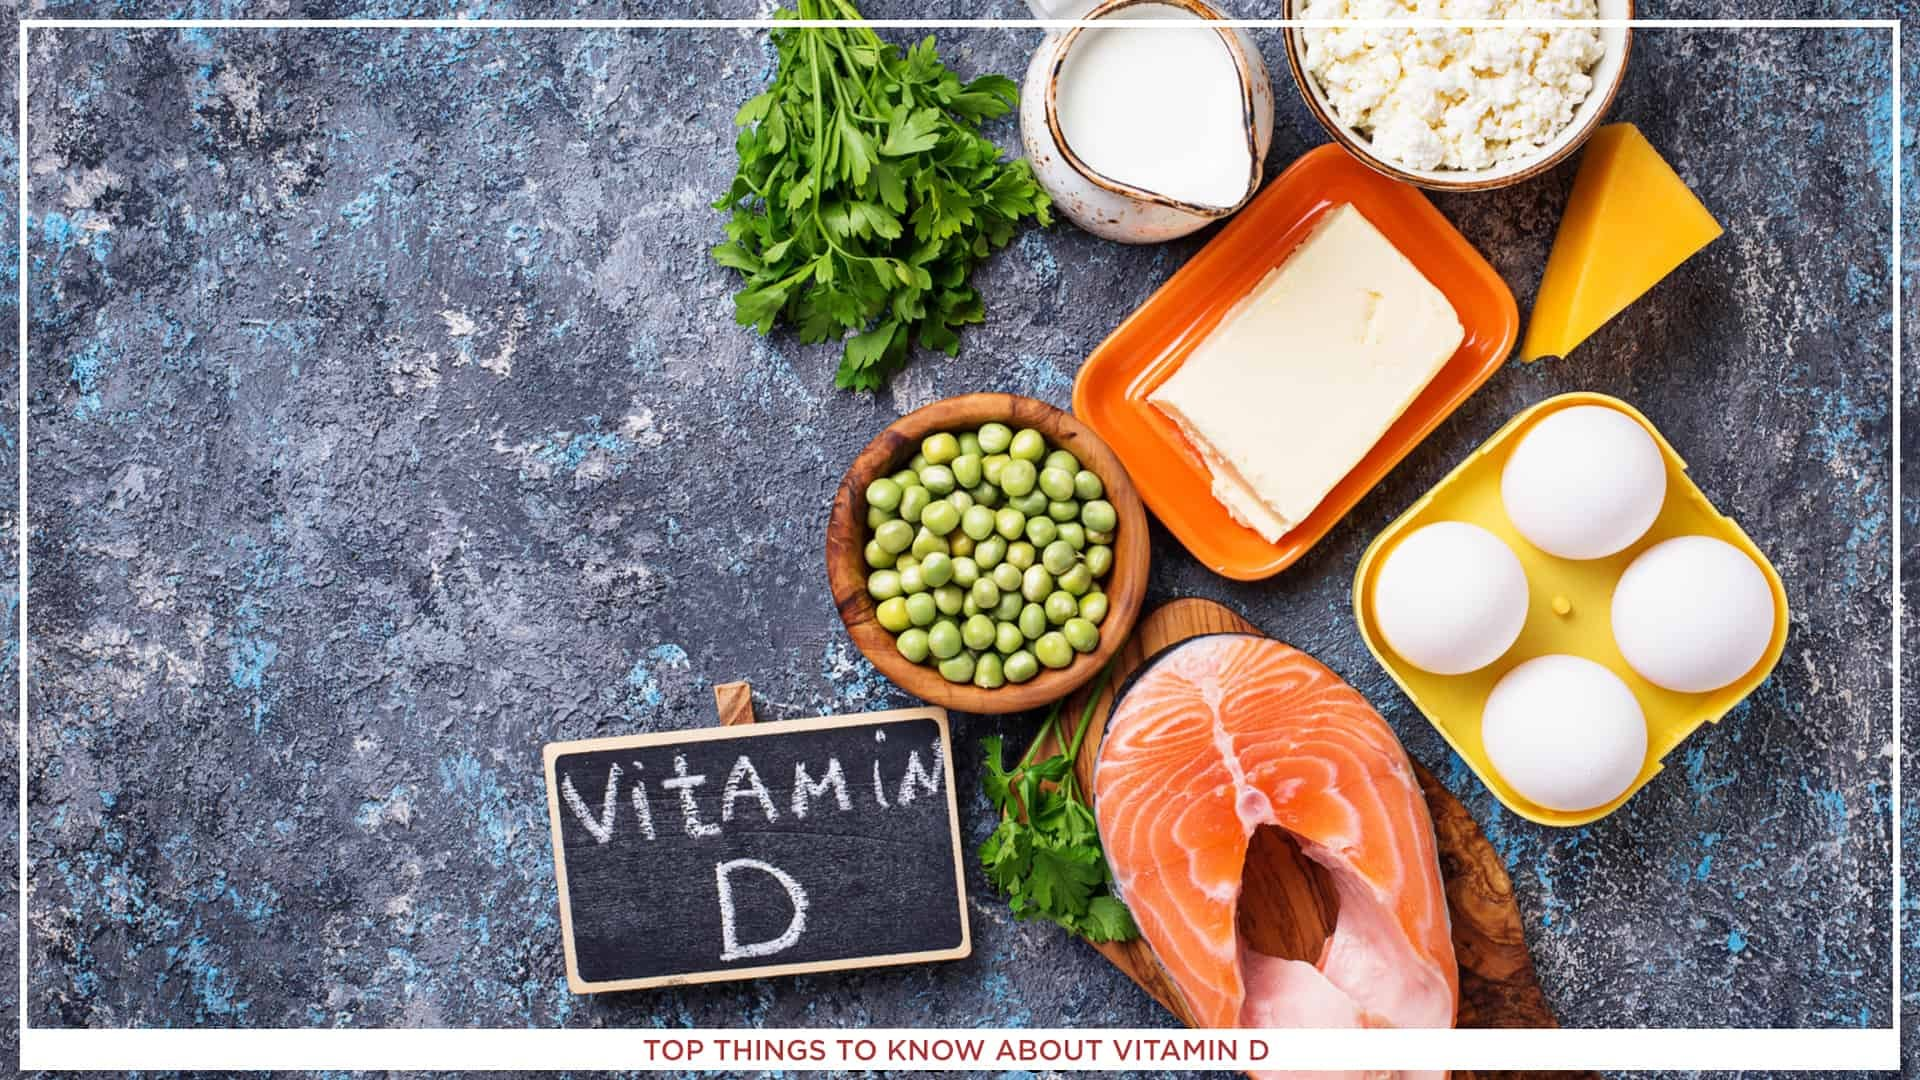 An image of salmon, eggs, cheese, milk, and other things containing vitamin D, on a dark grey background, togehter with a table with vitamin ''D'' on it.